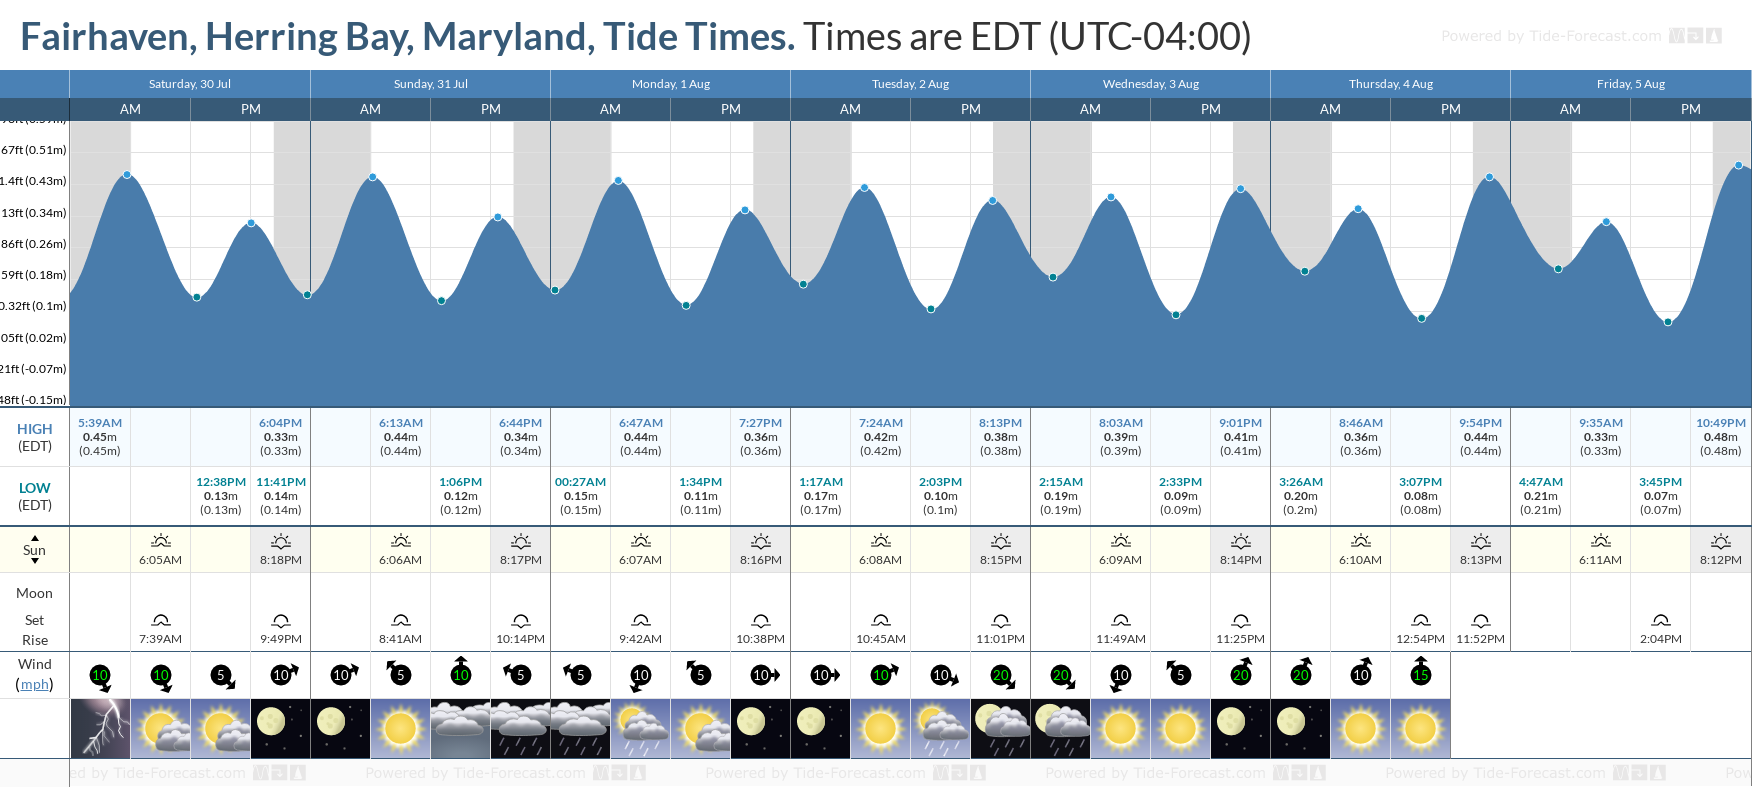 Fairhaven, Herring Bay, Maryland Tide Chart including high and low tide tide times for the next 7 days